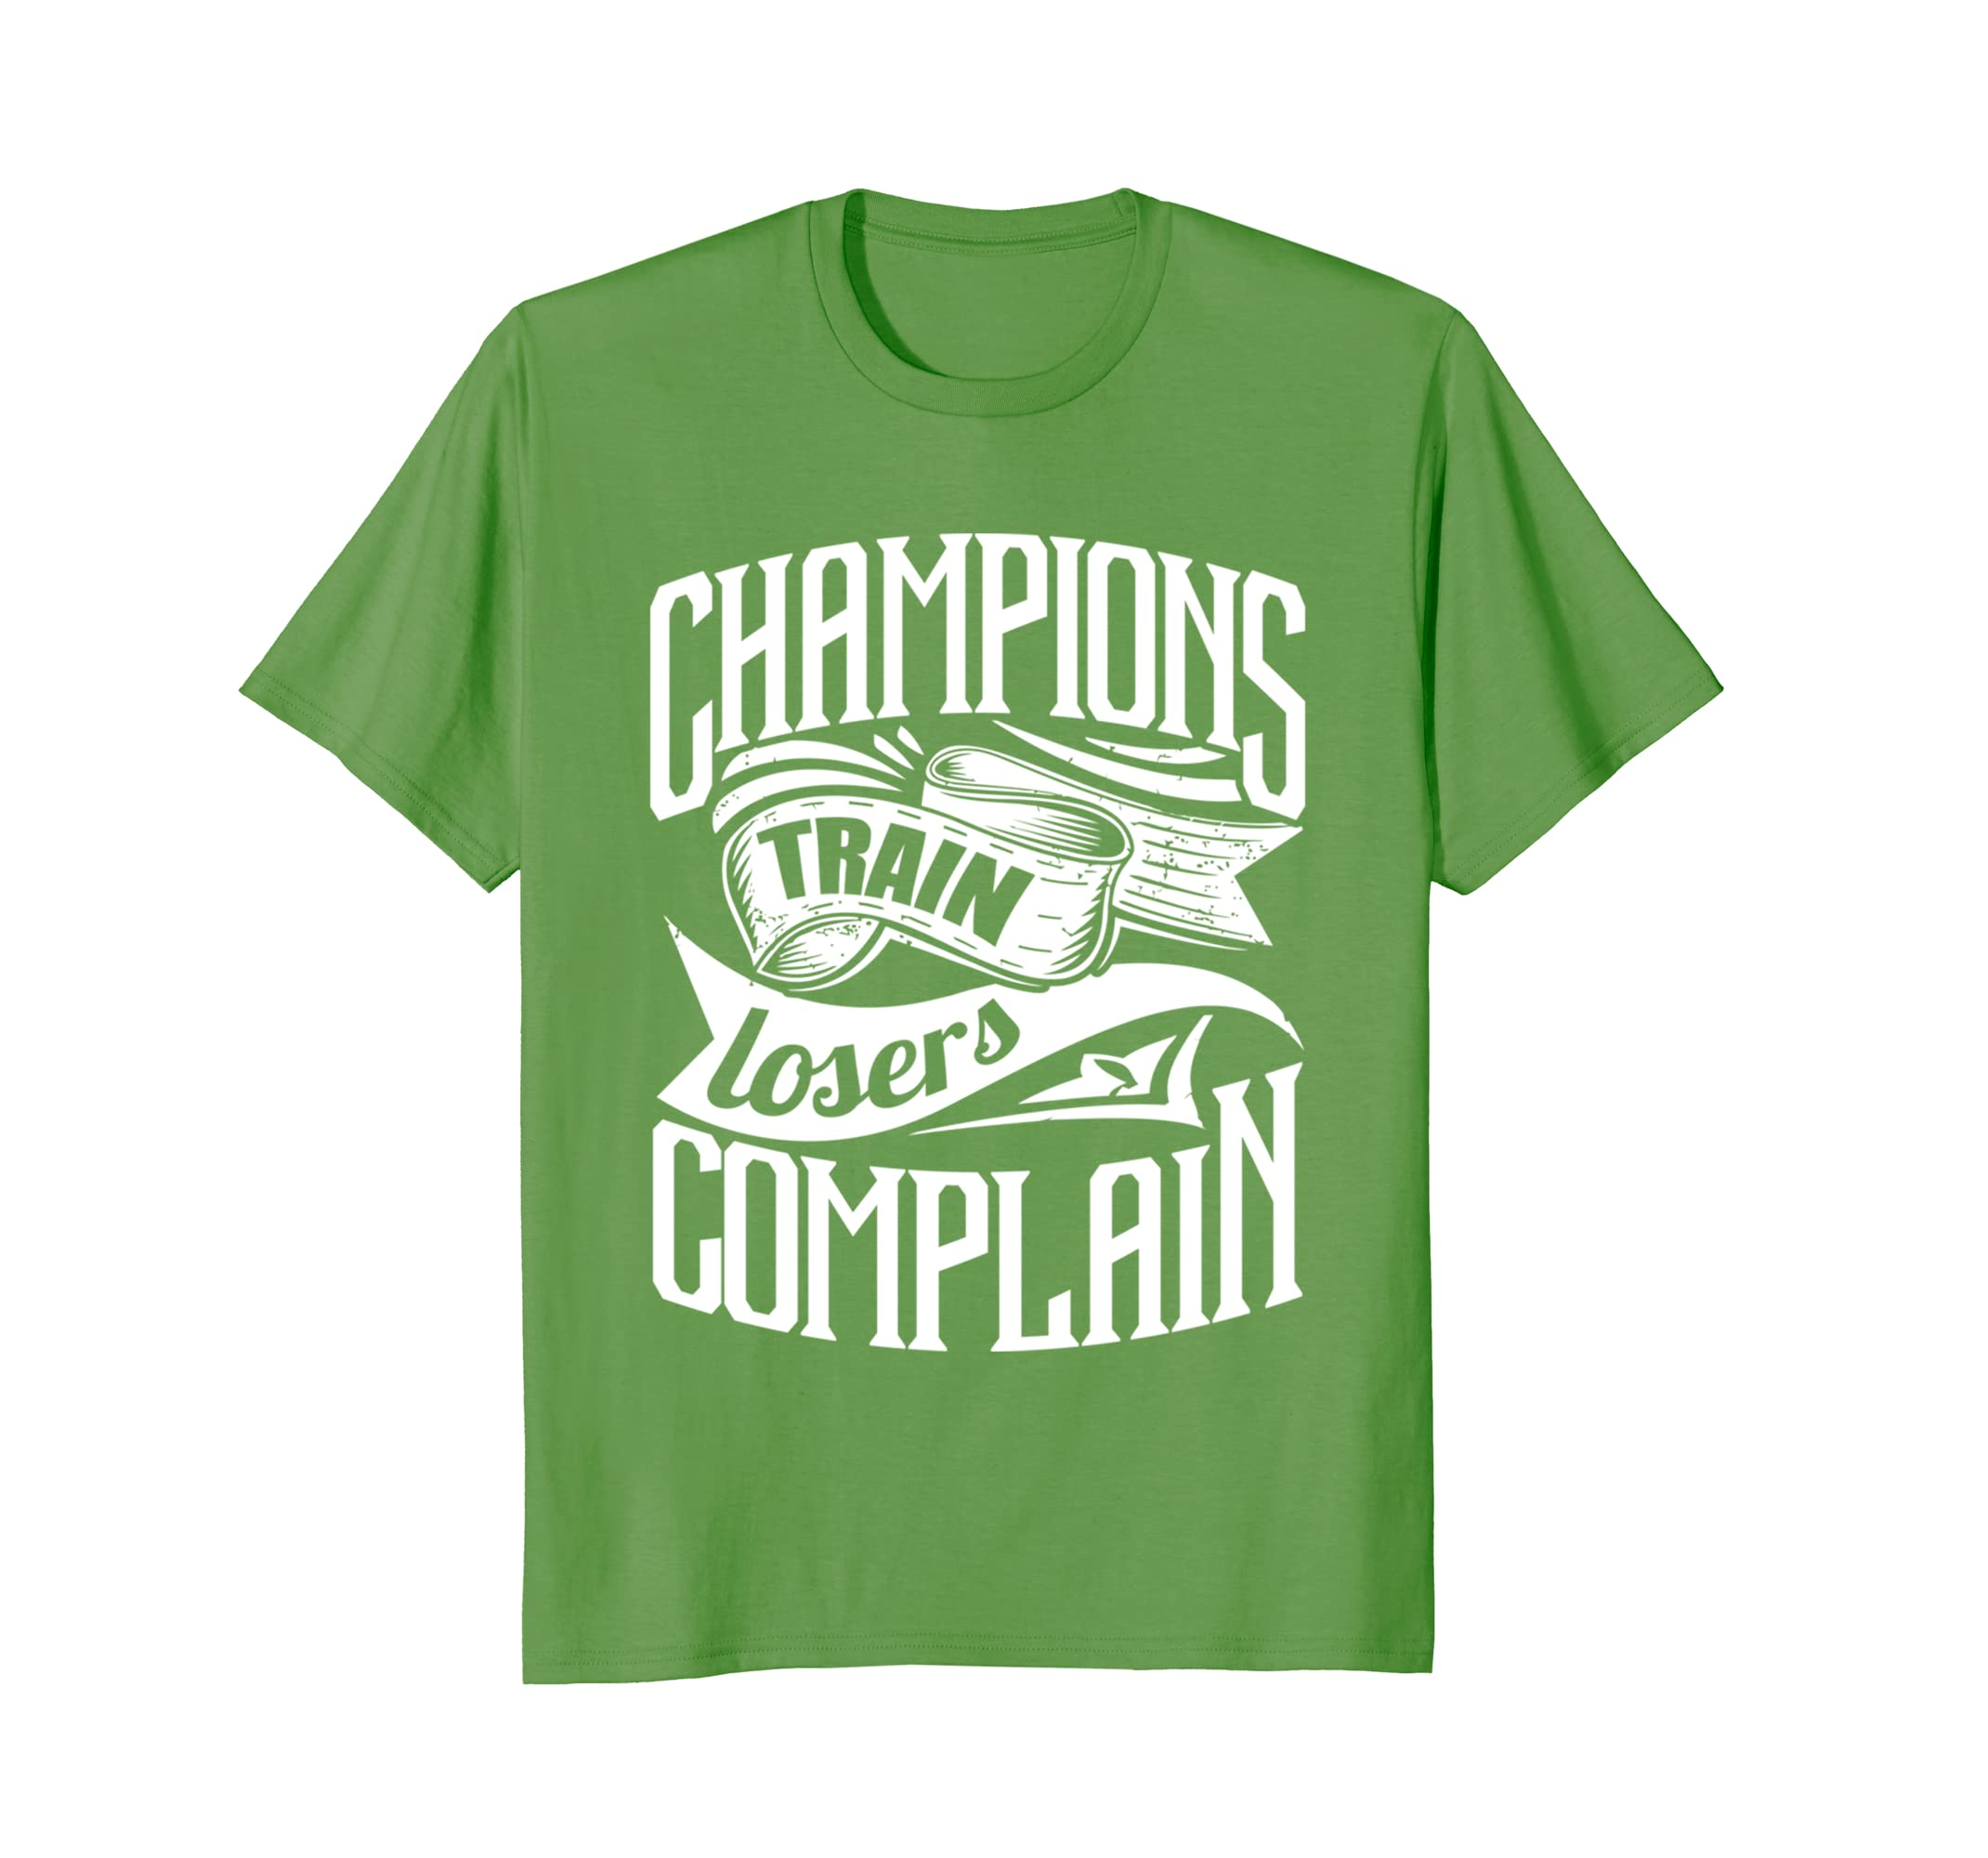 Motivational Quotes For Sports Teams: Champions Train Losers Complain Gym Motivation T-Shirt